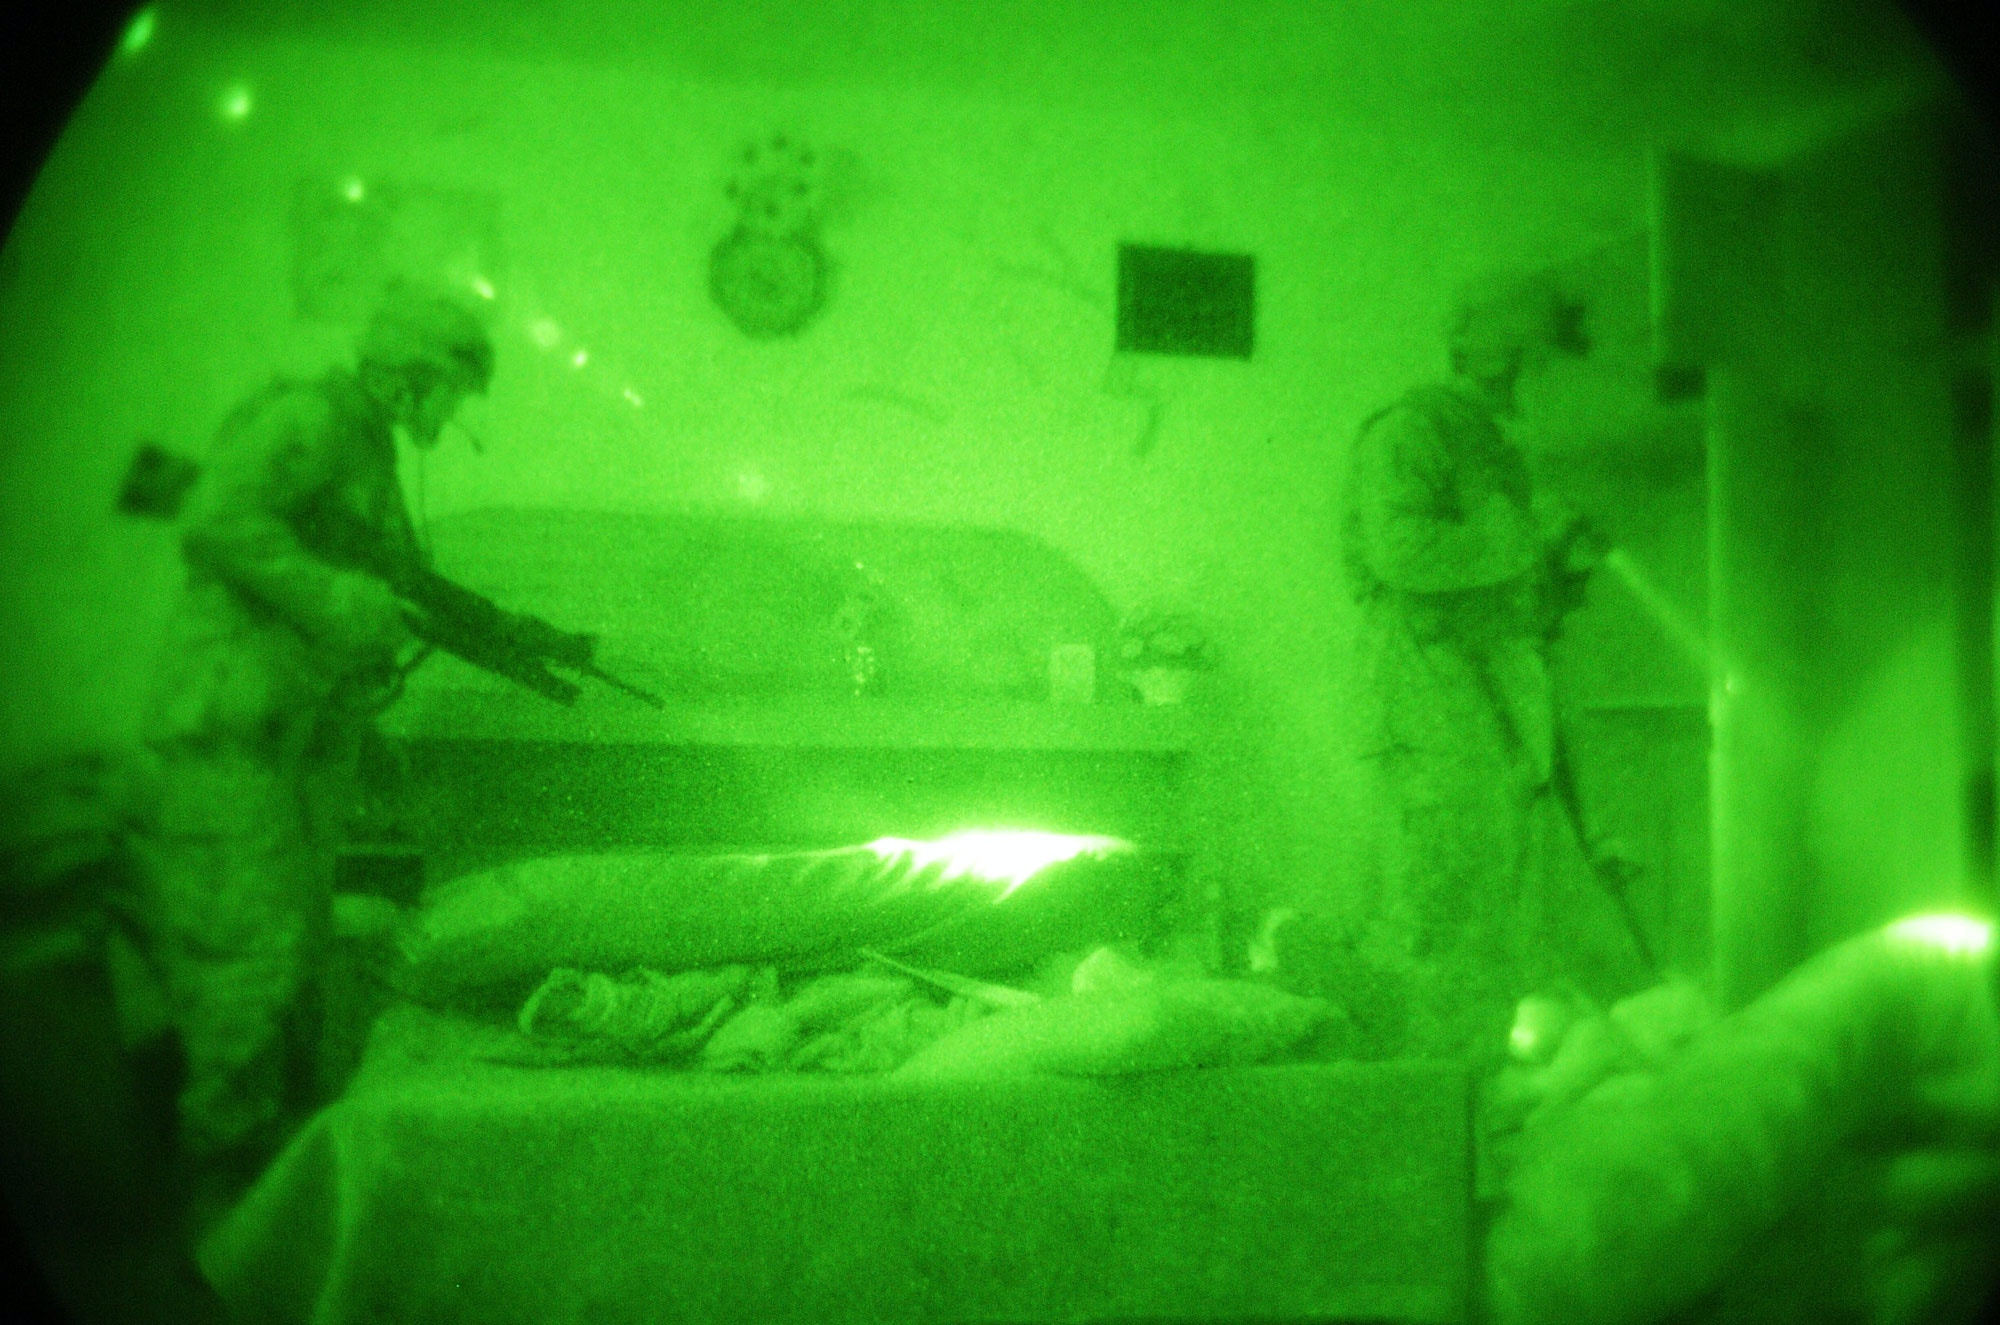 "HASWAH, IRAQ - OCTOBER 8:  U.S. Marines of the 1st Battalion 2nd Marines inspect the bedroom of a suspect, while patroling October 8, 2004 in the insurgent stronghold of Haswah, 25 miles south of Baghdad, Iraq. The patrol is part of a new Marine offensive called ""Operation Phantom Fury"", aimed at cutting off supply lines for Iraqi insurgents that shift cash, weapons, car bombs and militants from Fallujah and Ramadi to Baghdad. The operation is part of a wider U.S. assault on insurgent strongholds across Iraq before elections in January.  (Photo by Scott Peterson/Getty Images)"